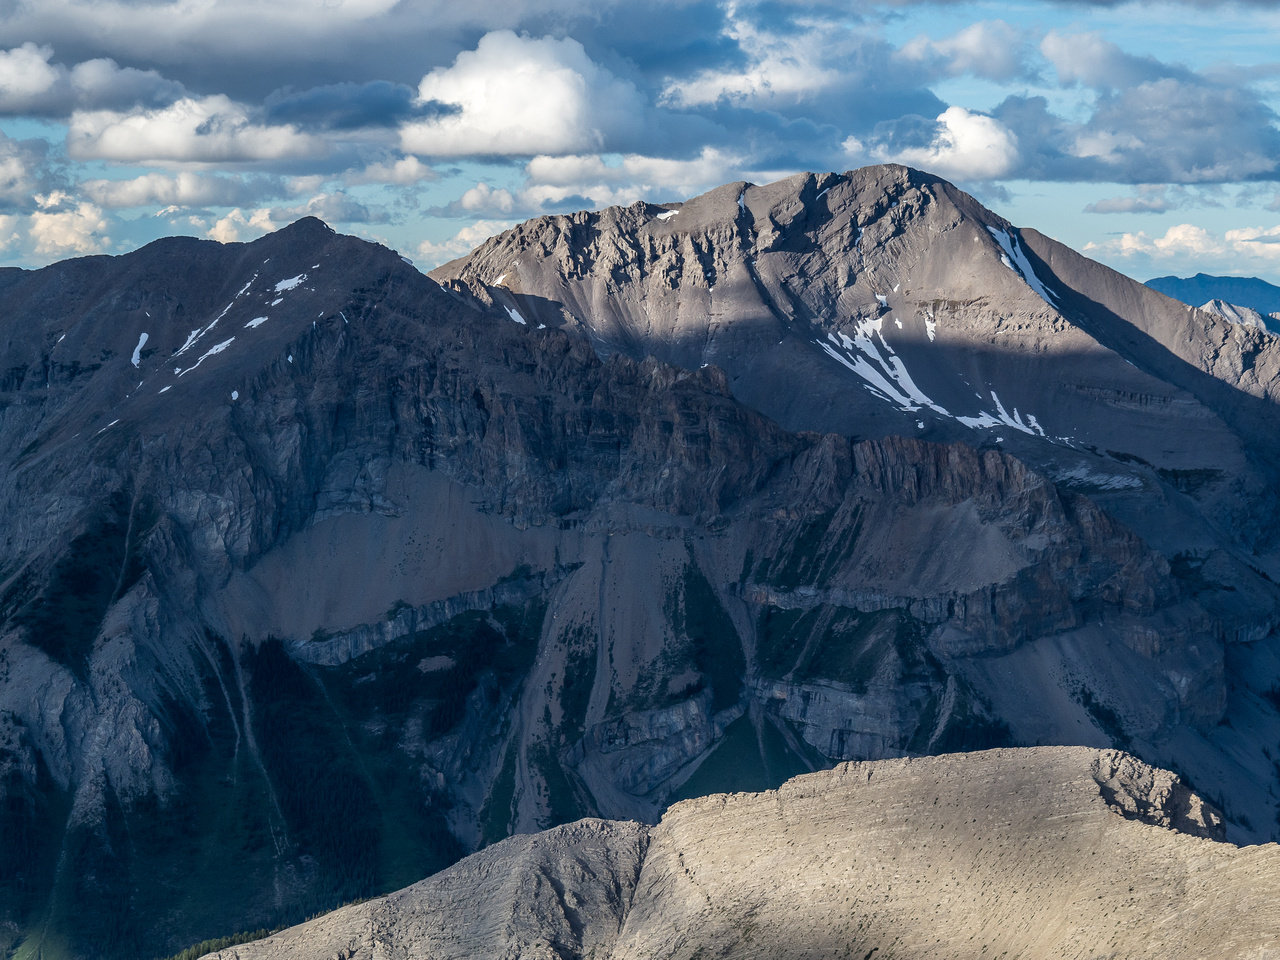 Nasswald Peak is named after Conrad Kain's birthplace in Austria. Golden Mountain in shadow at left.